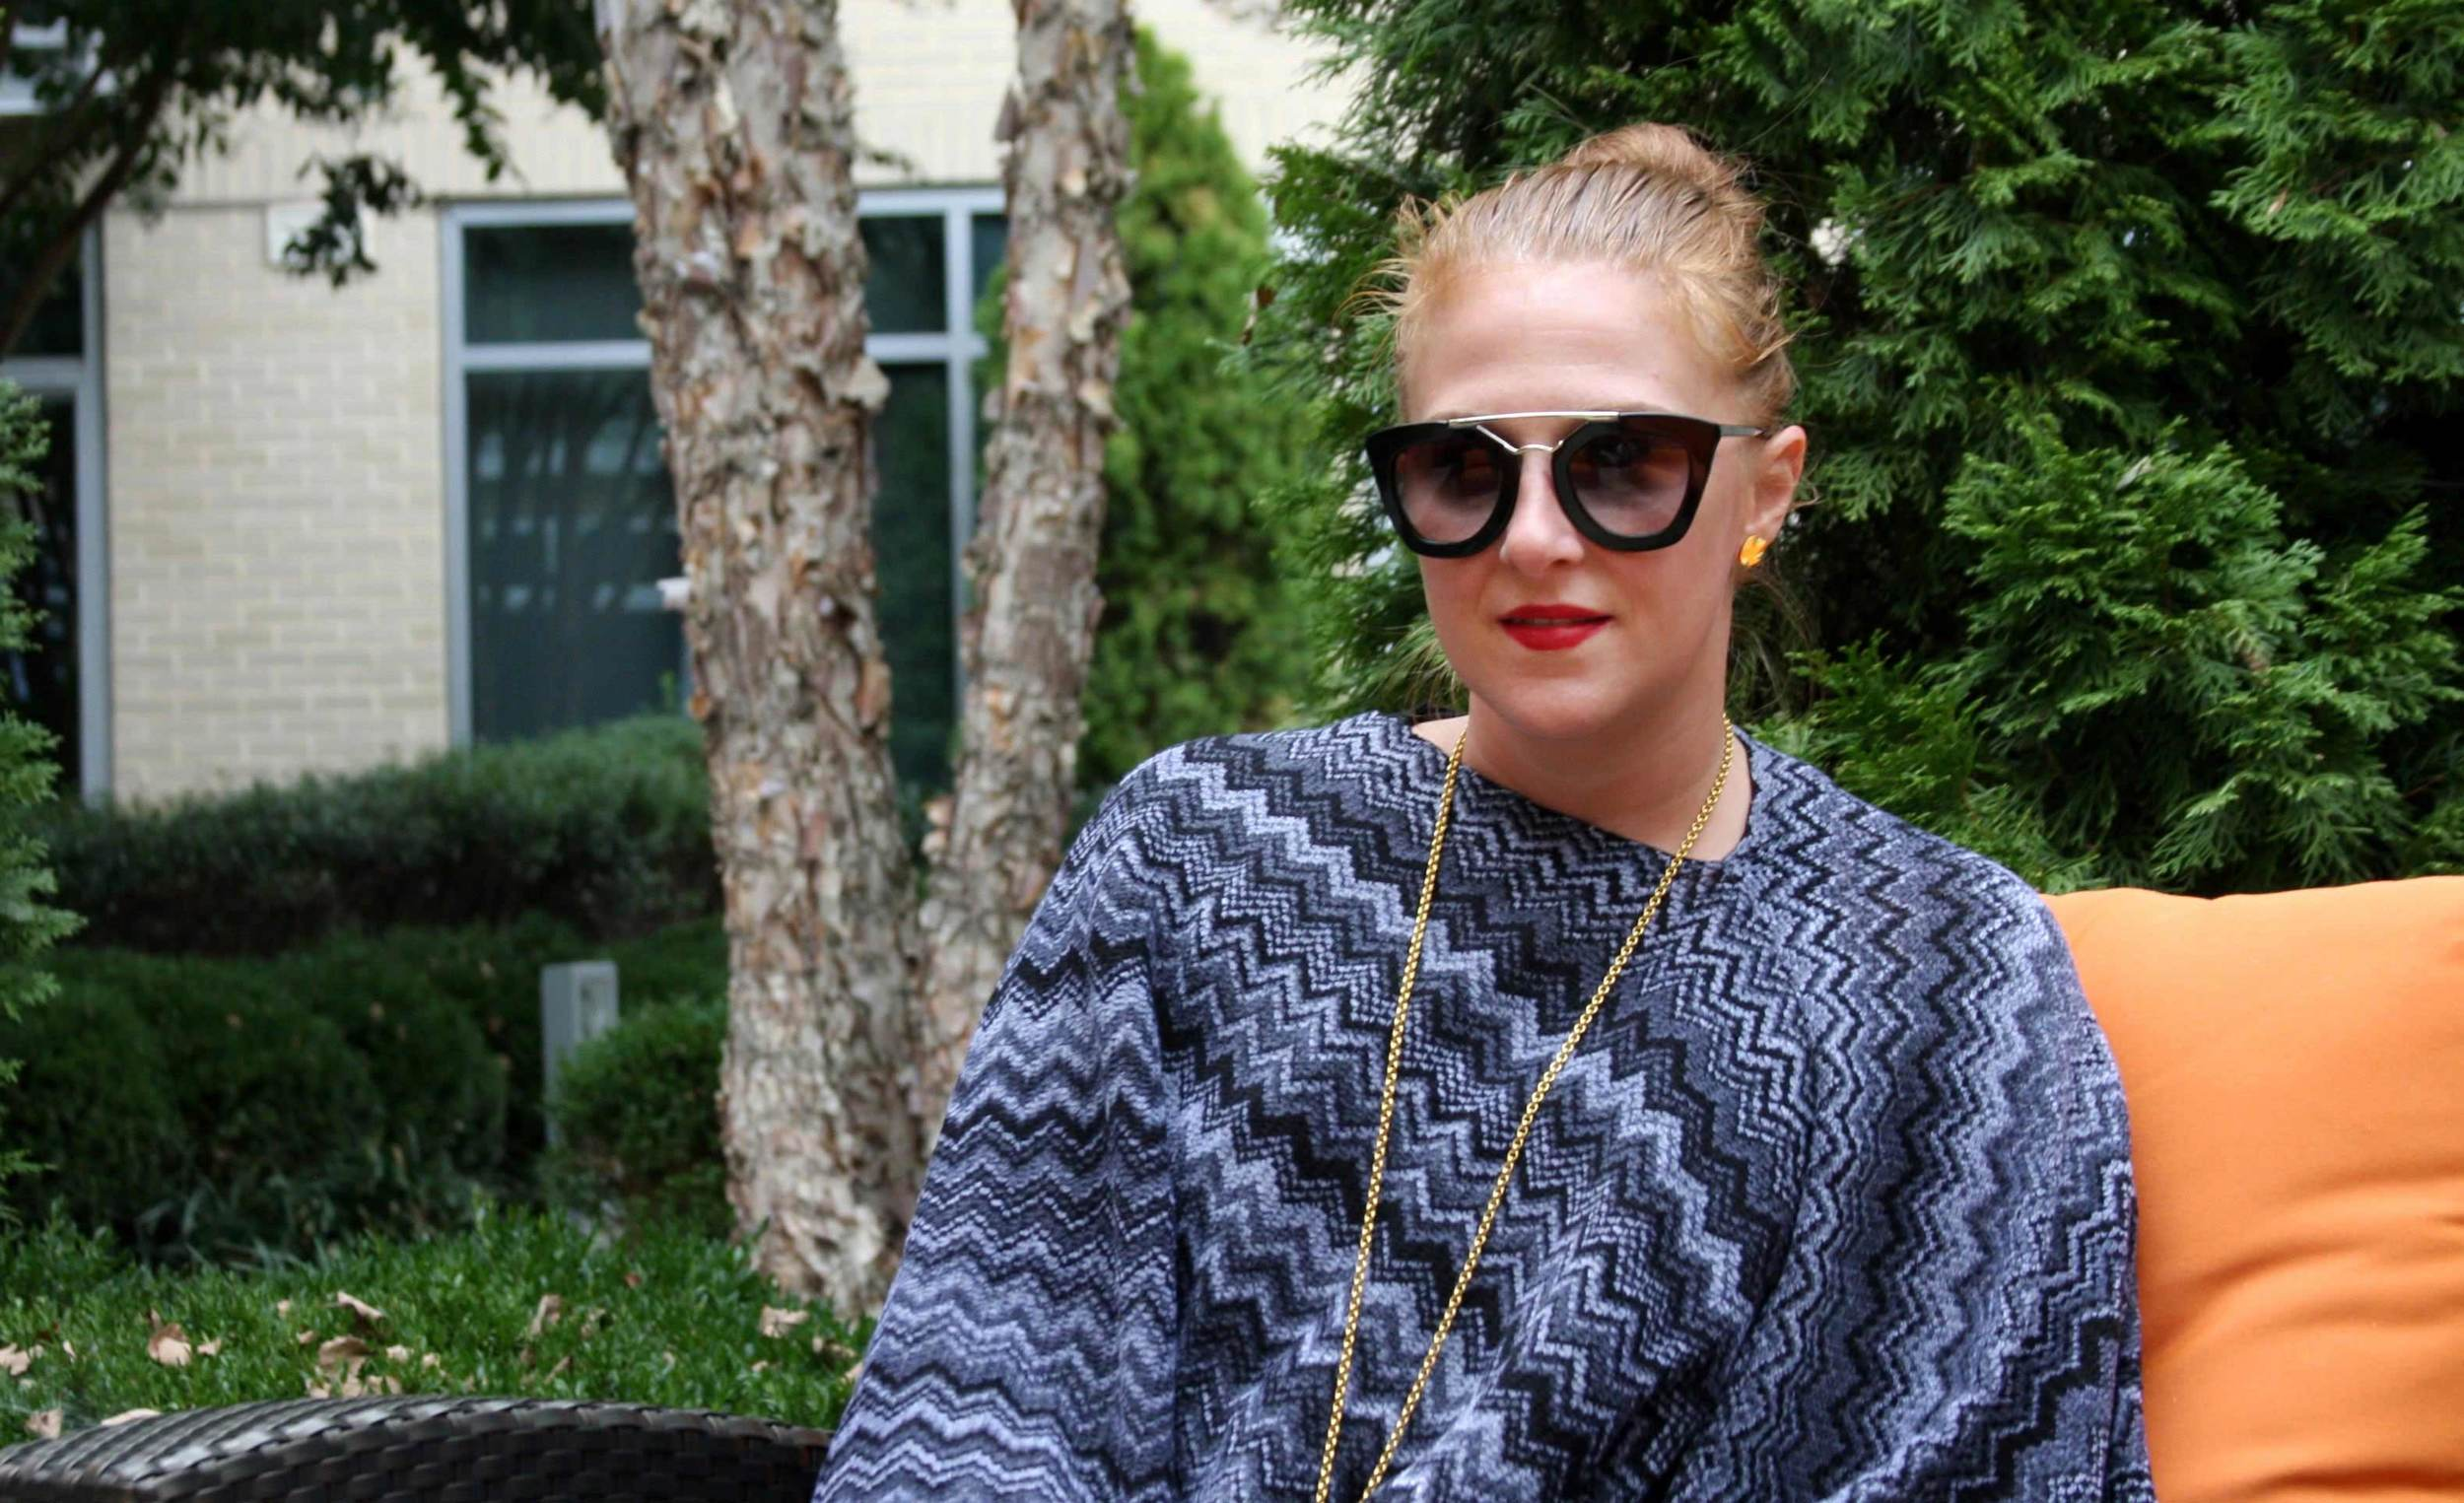 jule-vos-prada-sunglasses-missoni-poncho-thank-you-cinderlla-fashion-blog.jpg